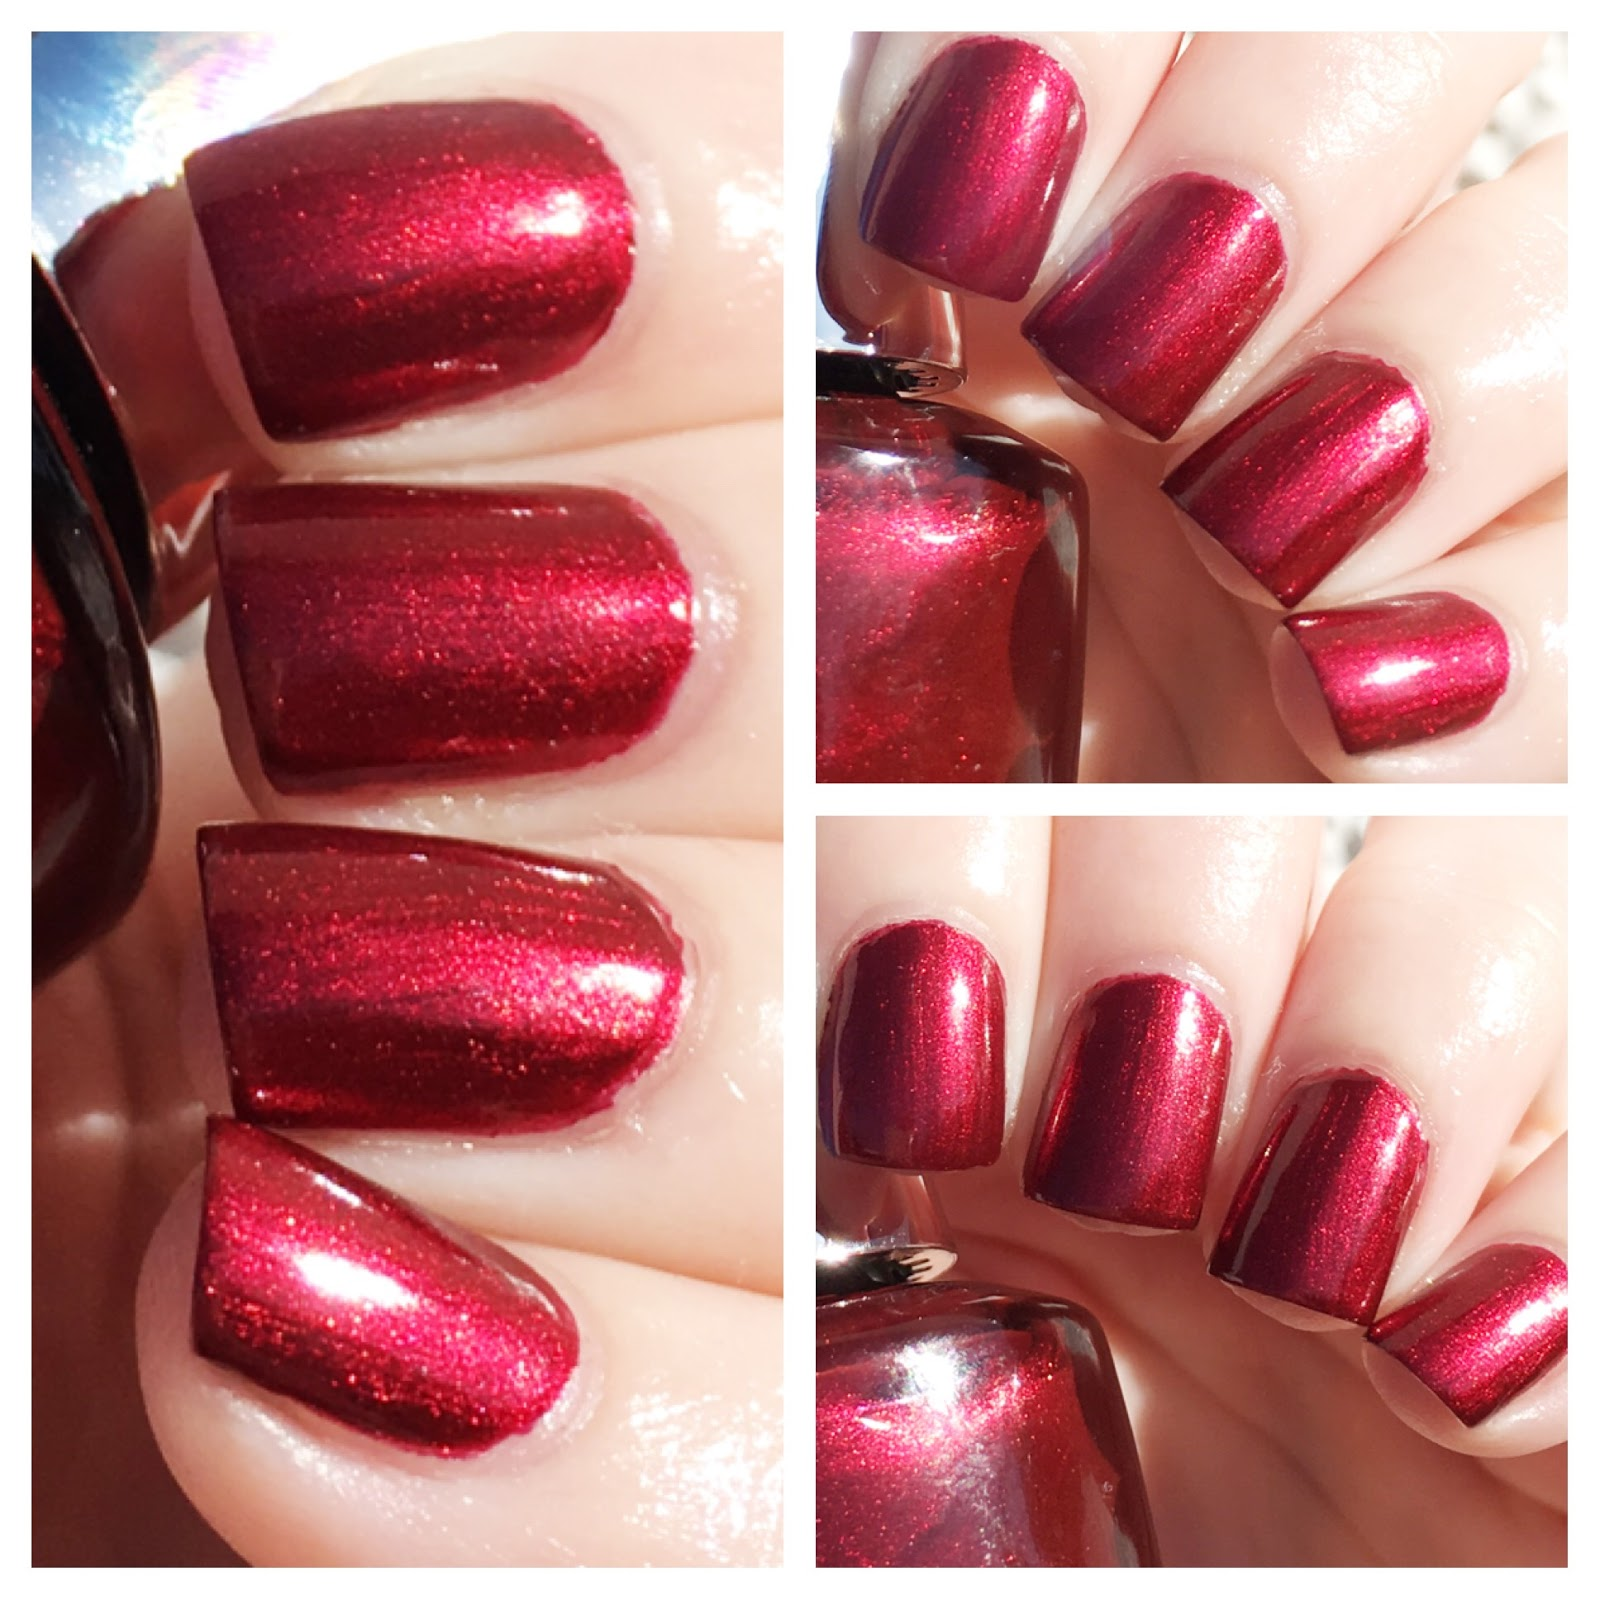 Two Coats Of Opi Infinite Shine 2 Icons Nail Lacquer In I M Not Really A Waitress Shimmering Chianti Red